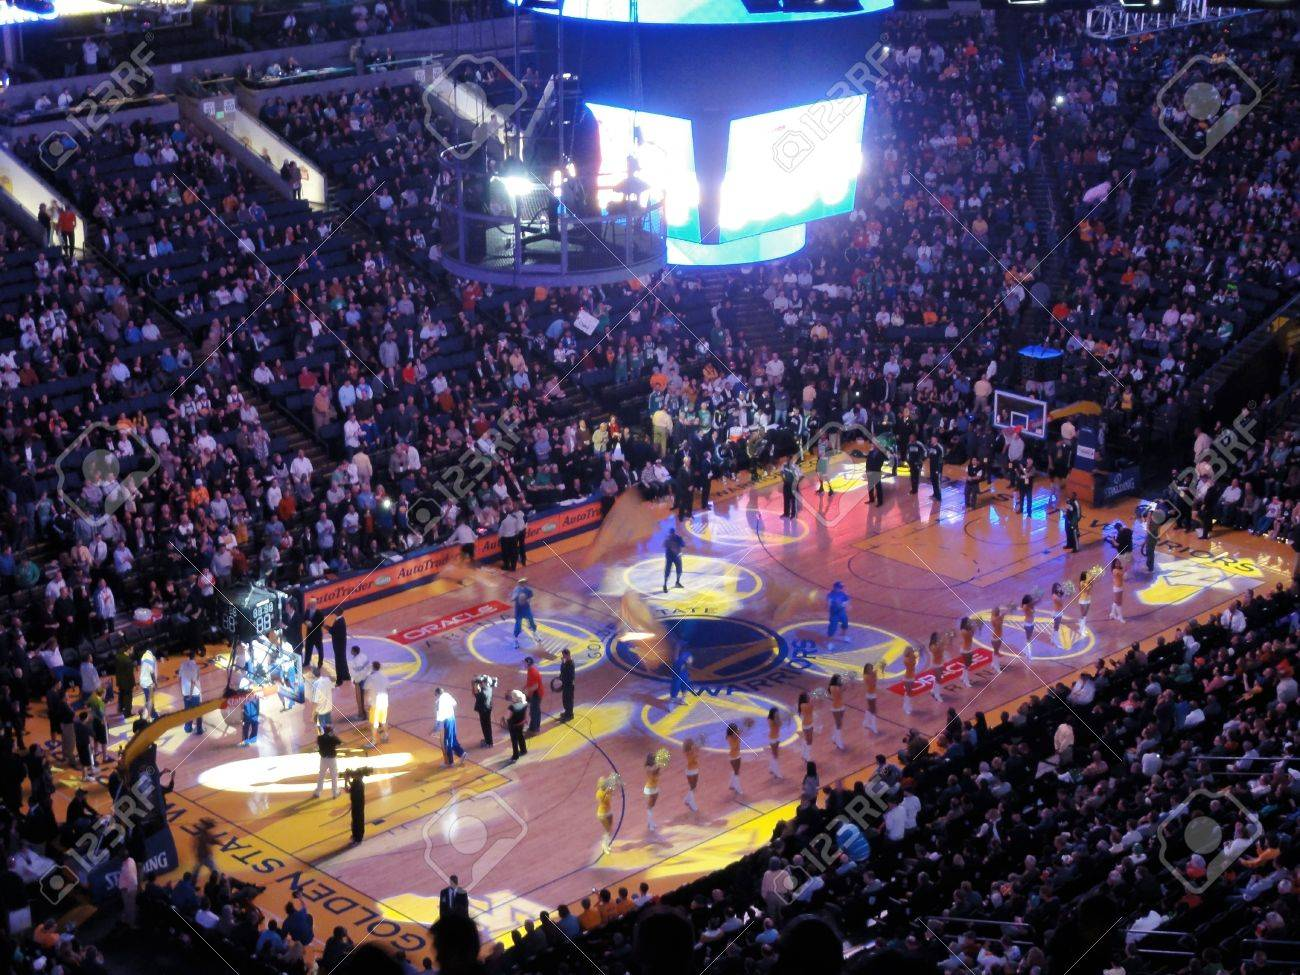 OAKLAND, CA - FEBRUARY 22: Light show goes on during Golden State Warriors intro to game as cheerleaders pump up crowd. Taken February 22, 2011 Oracle Arena Oakland, CA. - 19921102